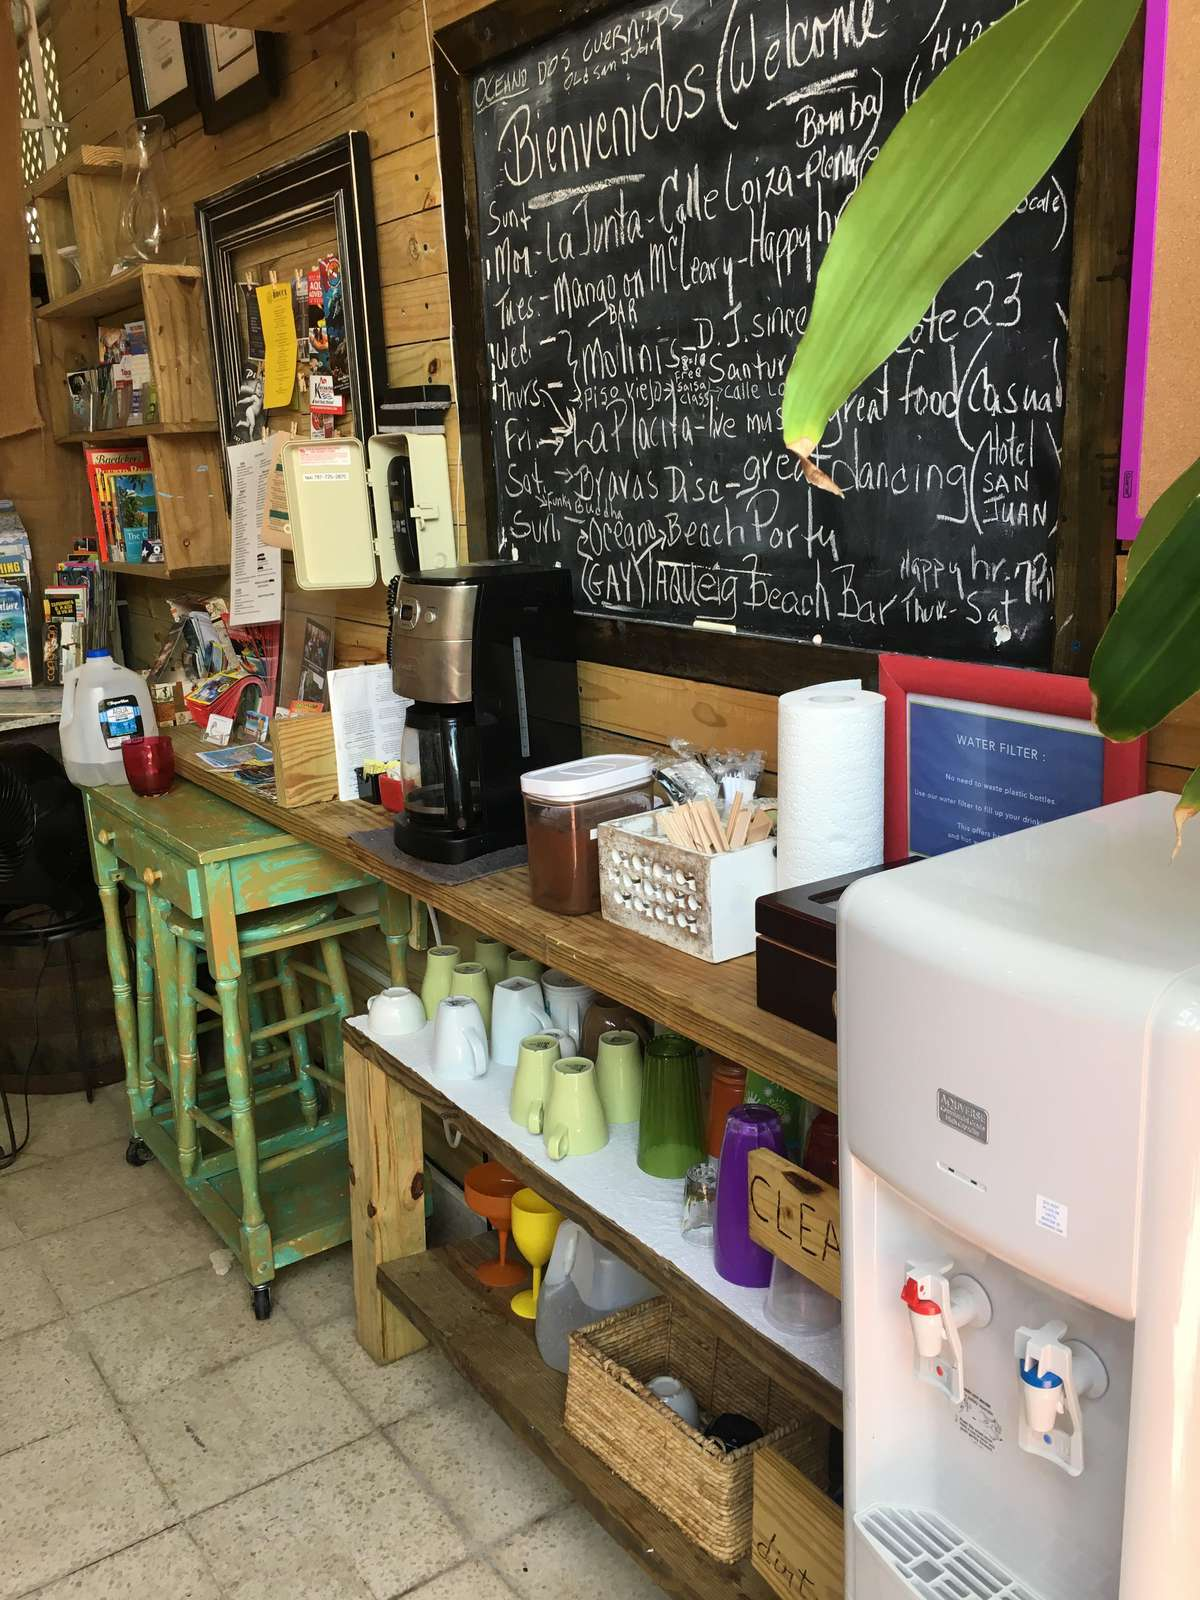 Our Hacienda is where you can get Puerto Rican coffee in the morning, or teas, filtered water, book share, community refrigerator, or convenience items